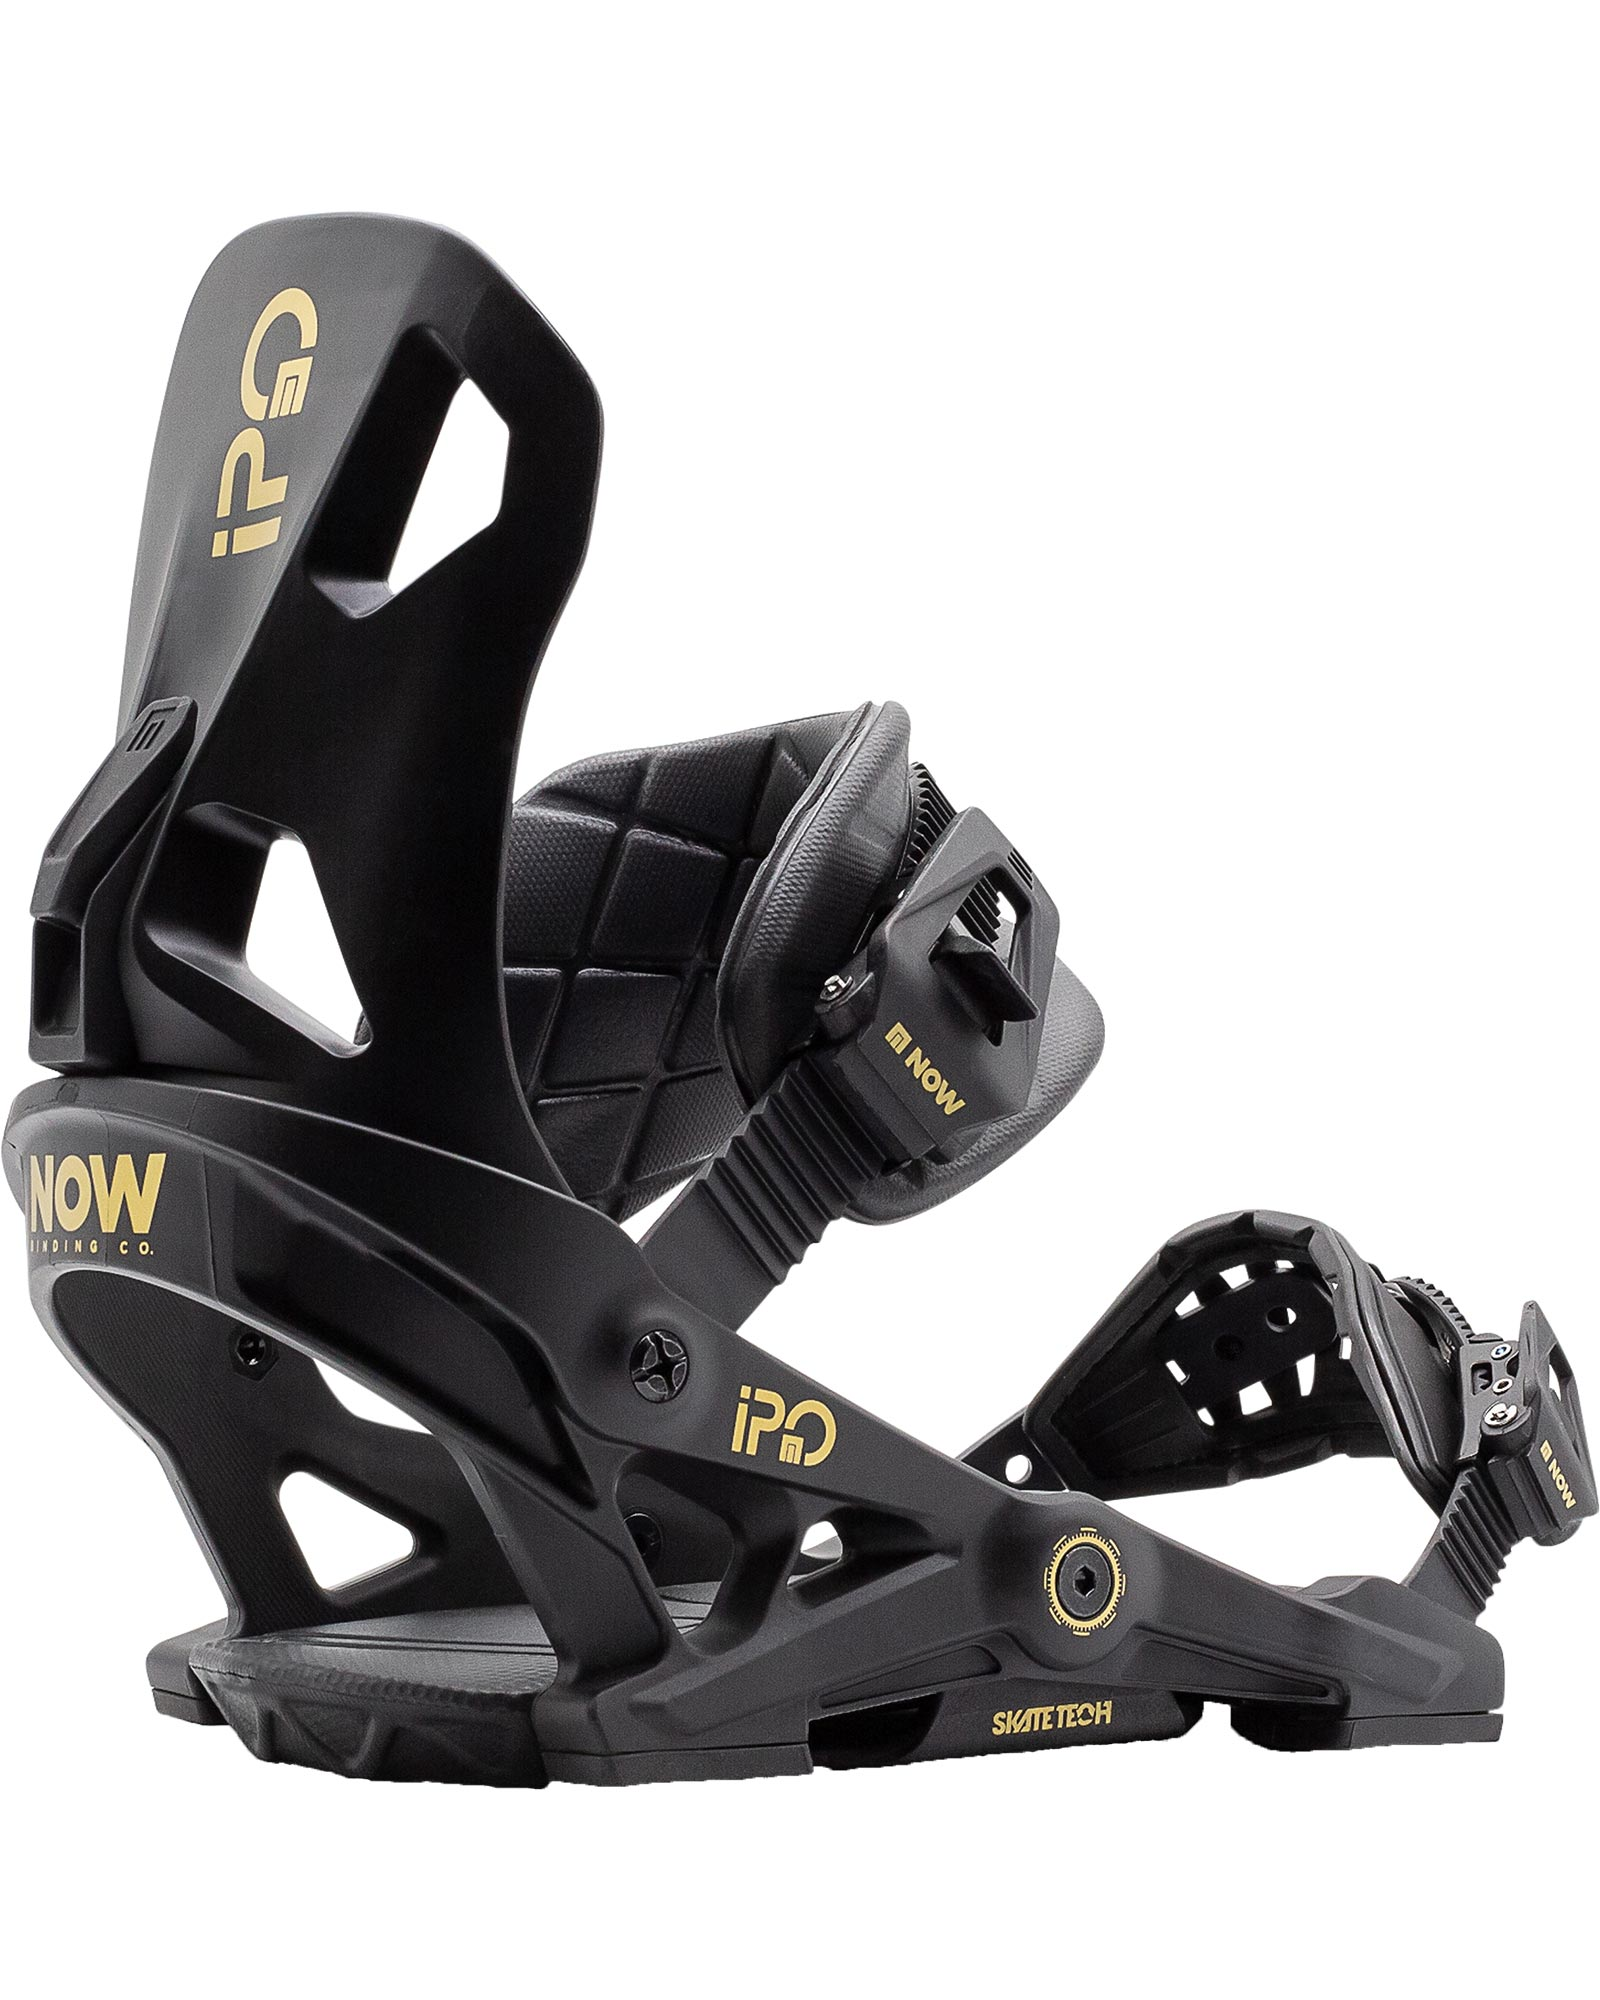 NOW IPO Men's Snowboard Bindings 2021 0